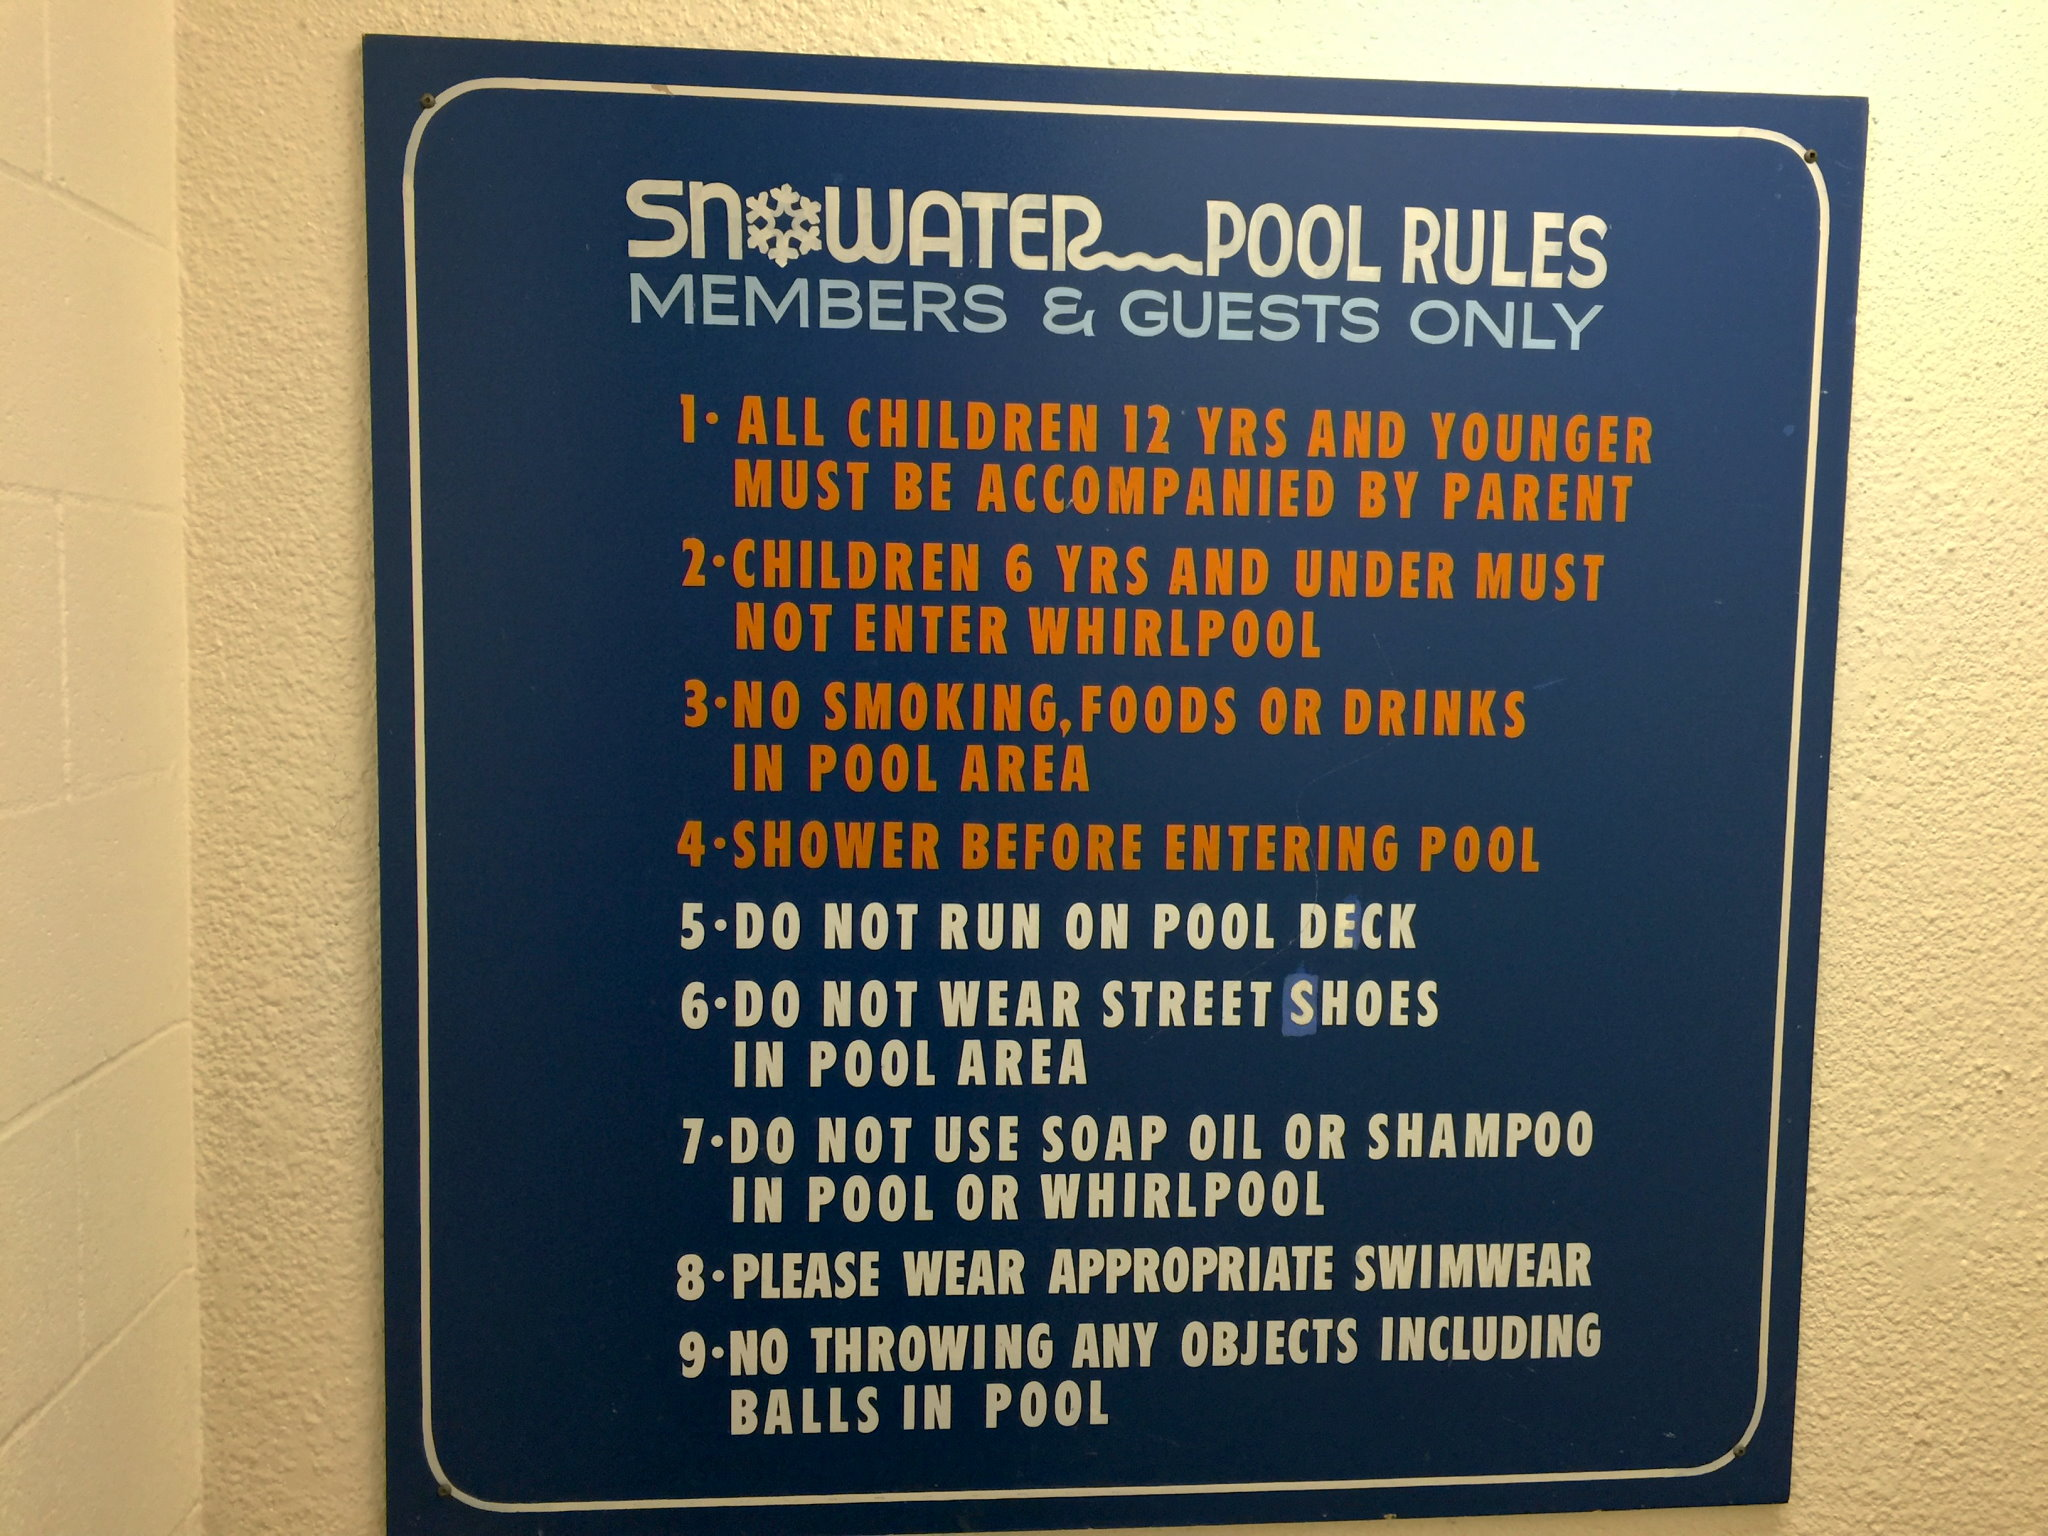 Snowater Community Amenities